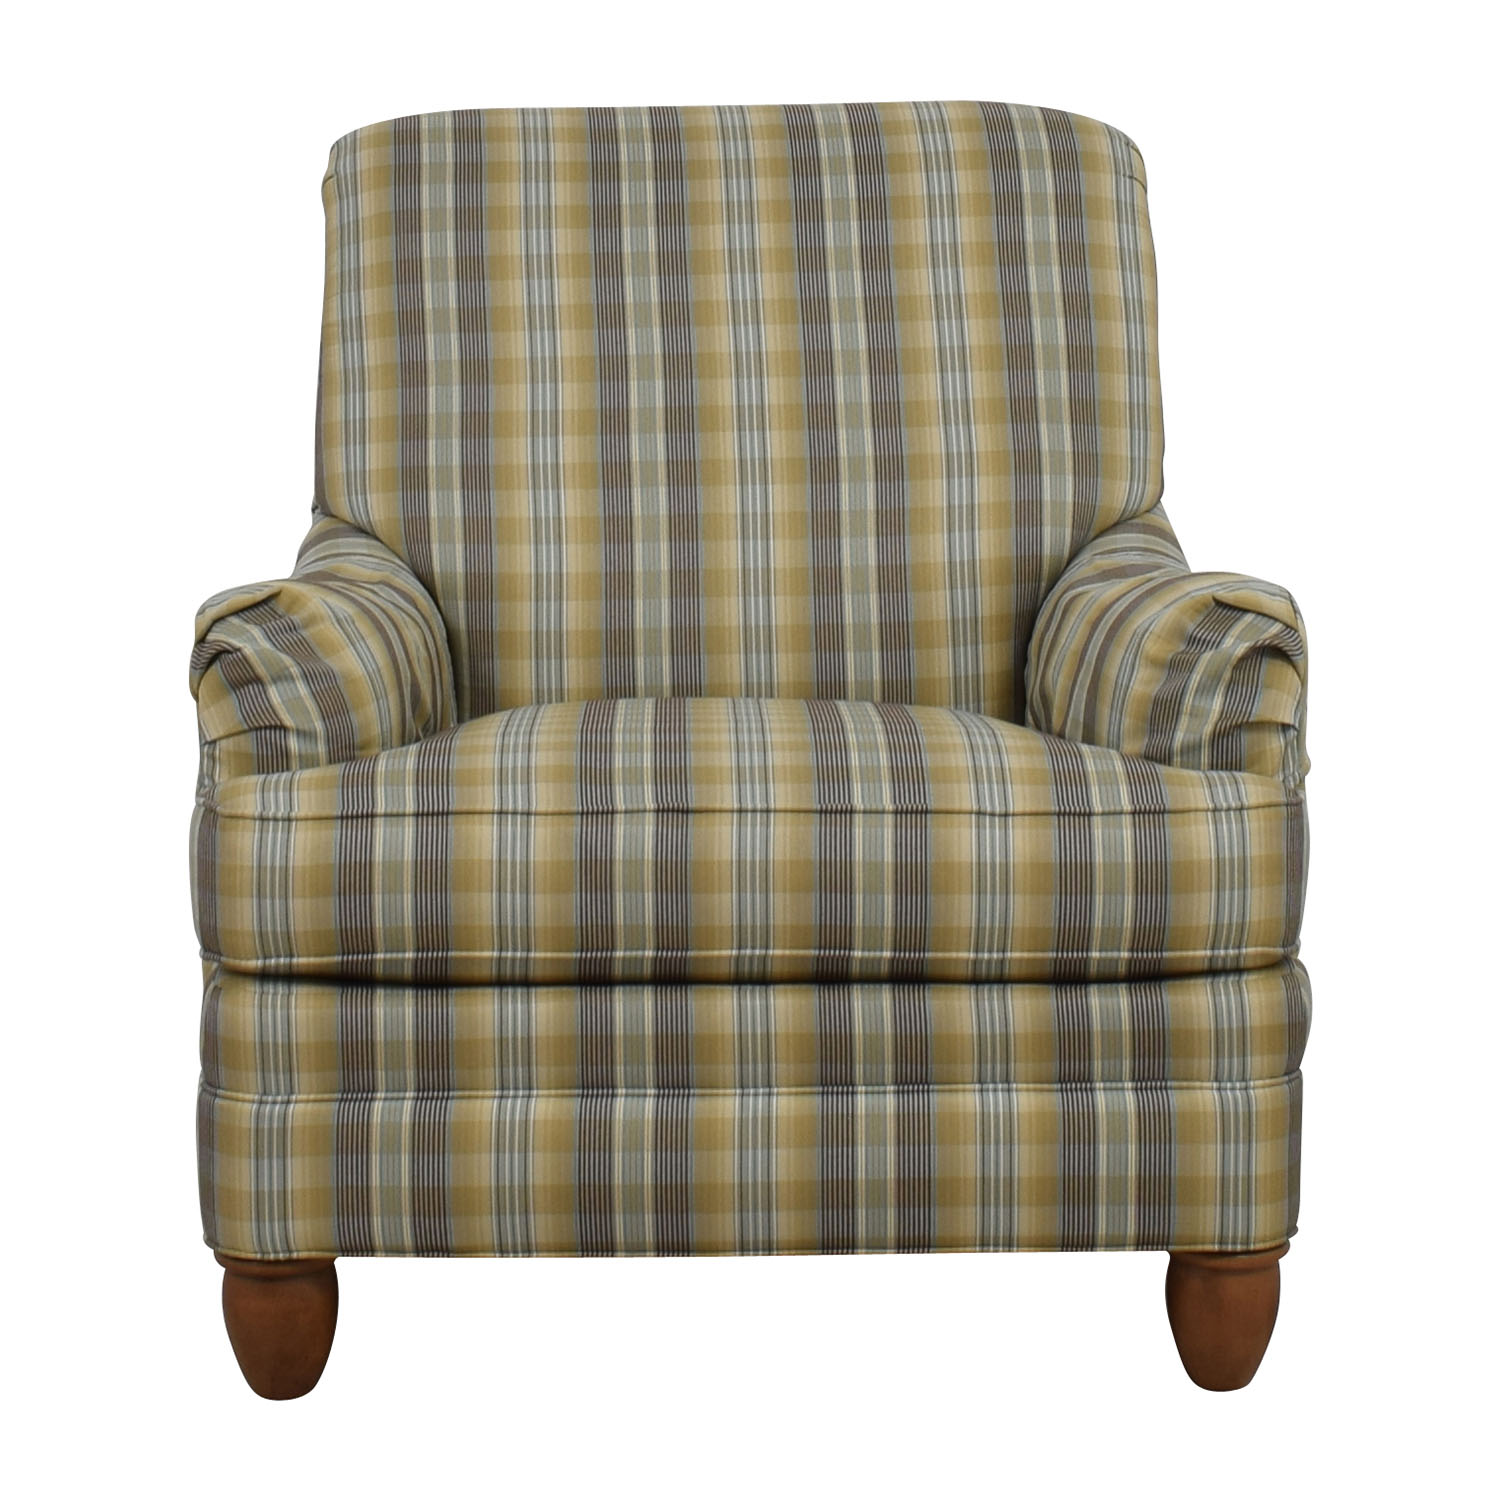 Superieur Ethan Allen Ethan Allen Plaid Arm Chair Accent Chairs ...